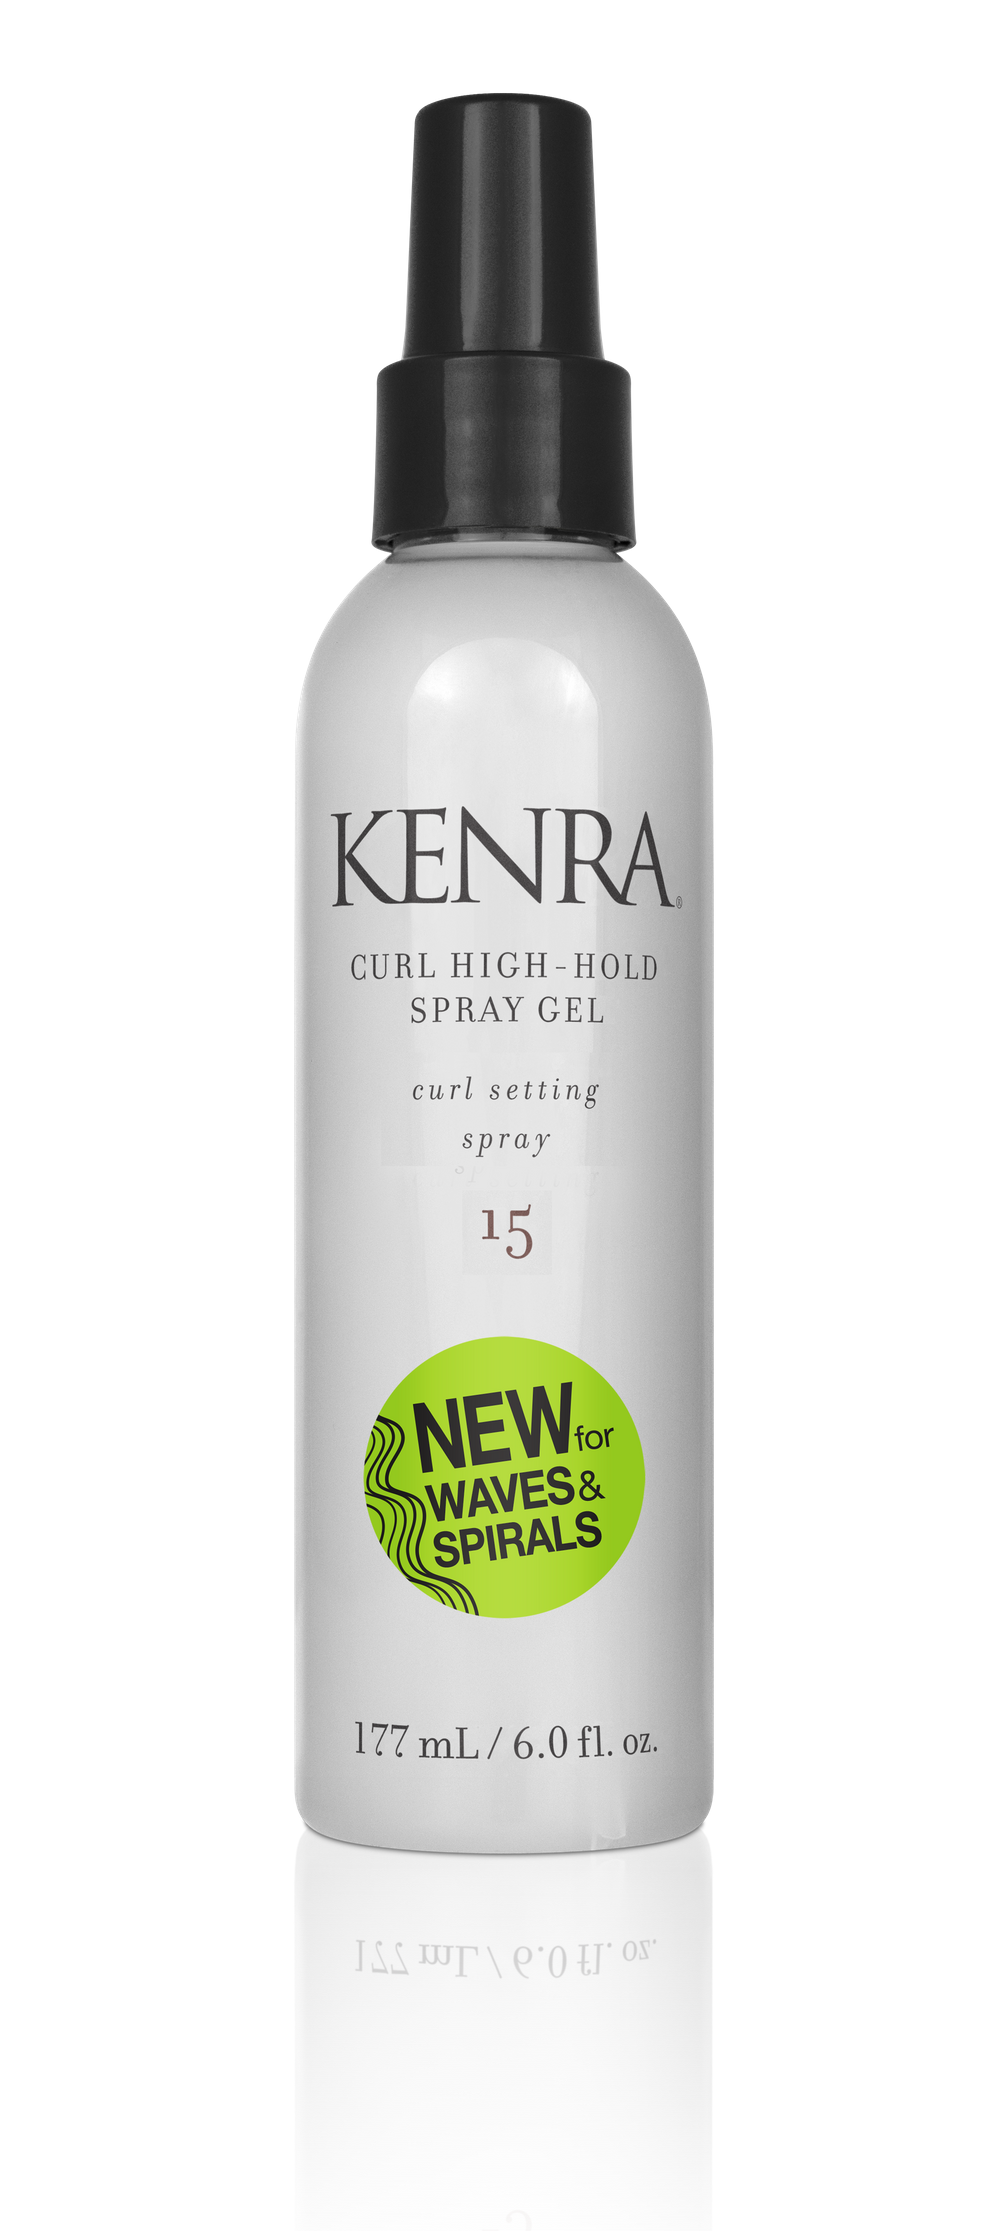 Kenra Curl High-Hold Spray Gel